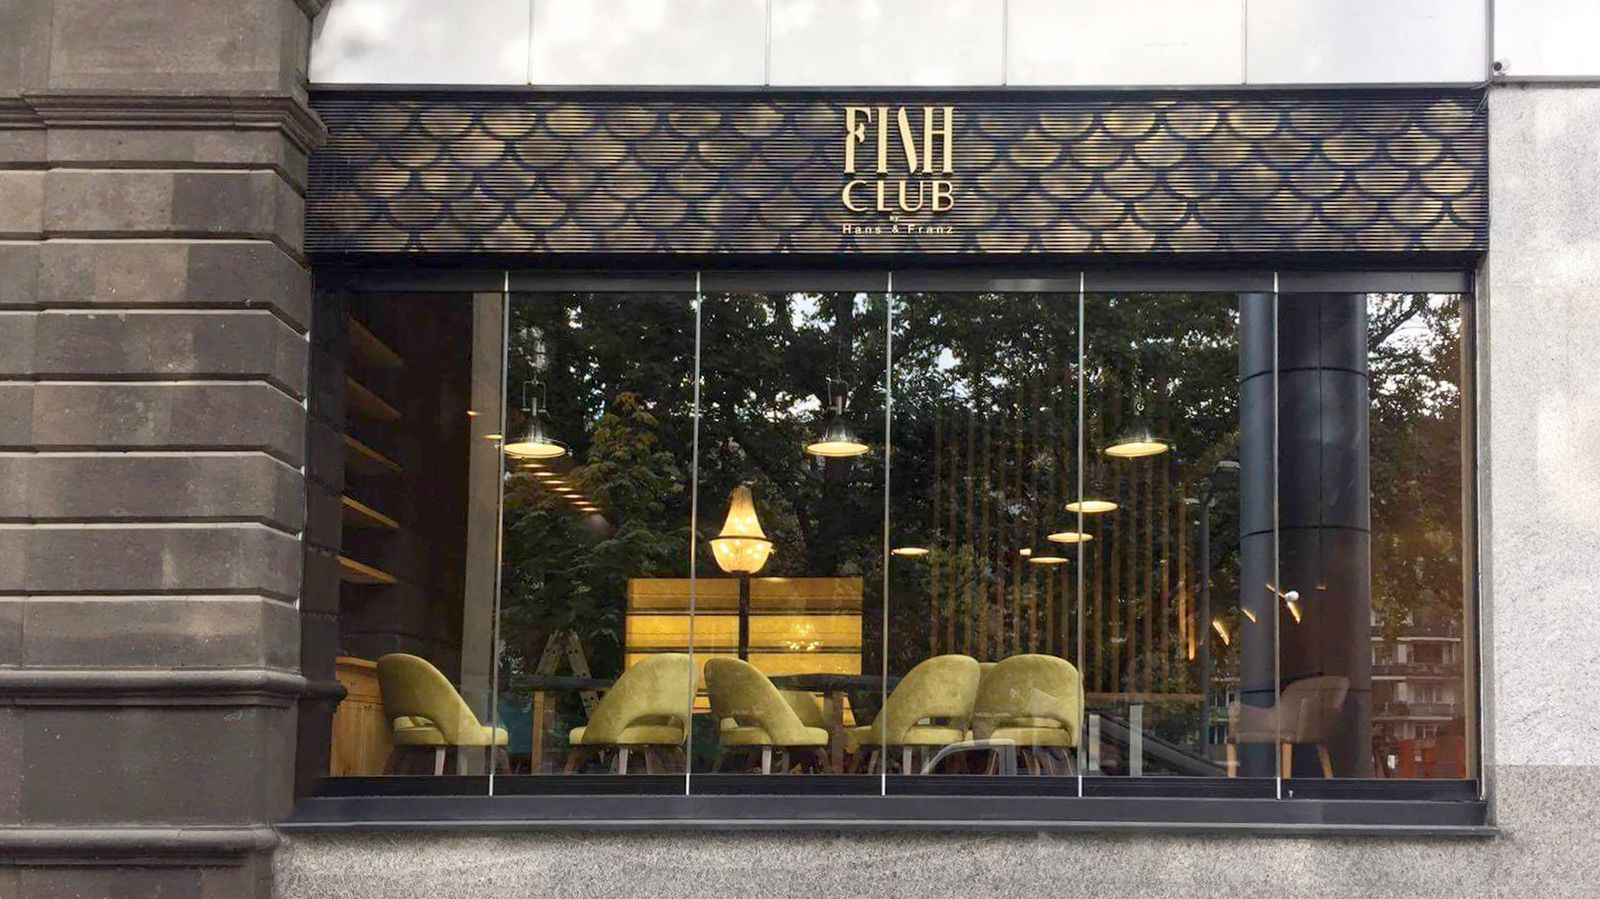 Fish Club by Hans and Franz 3d plastic letters with the company name made of PVC for restaurant outdoor branding